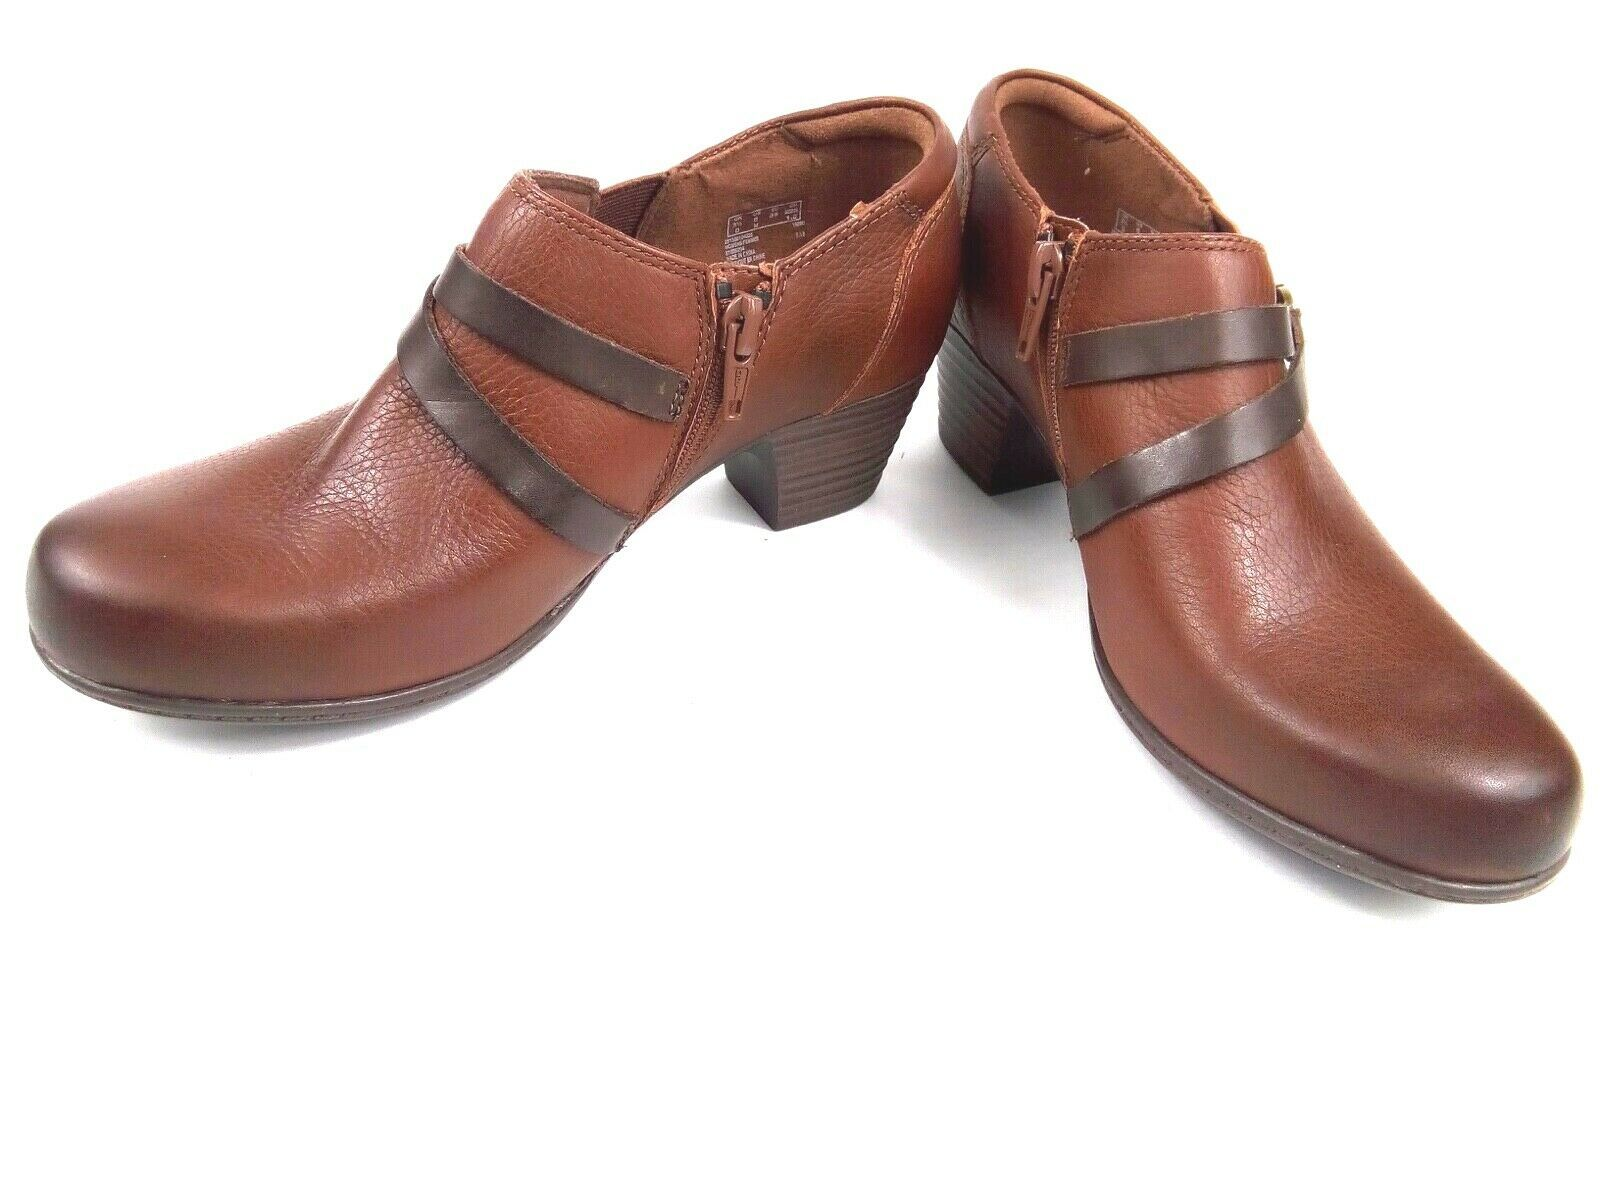 Clarks Women's Booties Collection Soft Cushion Brown Leather Ankle Boots Sz 6